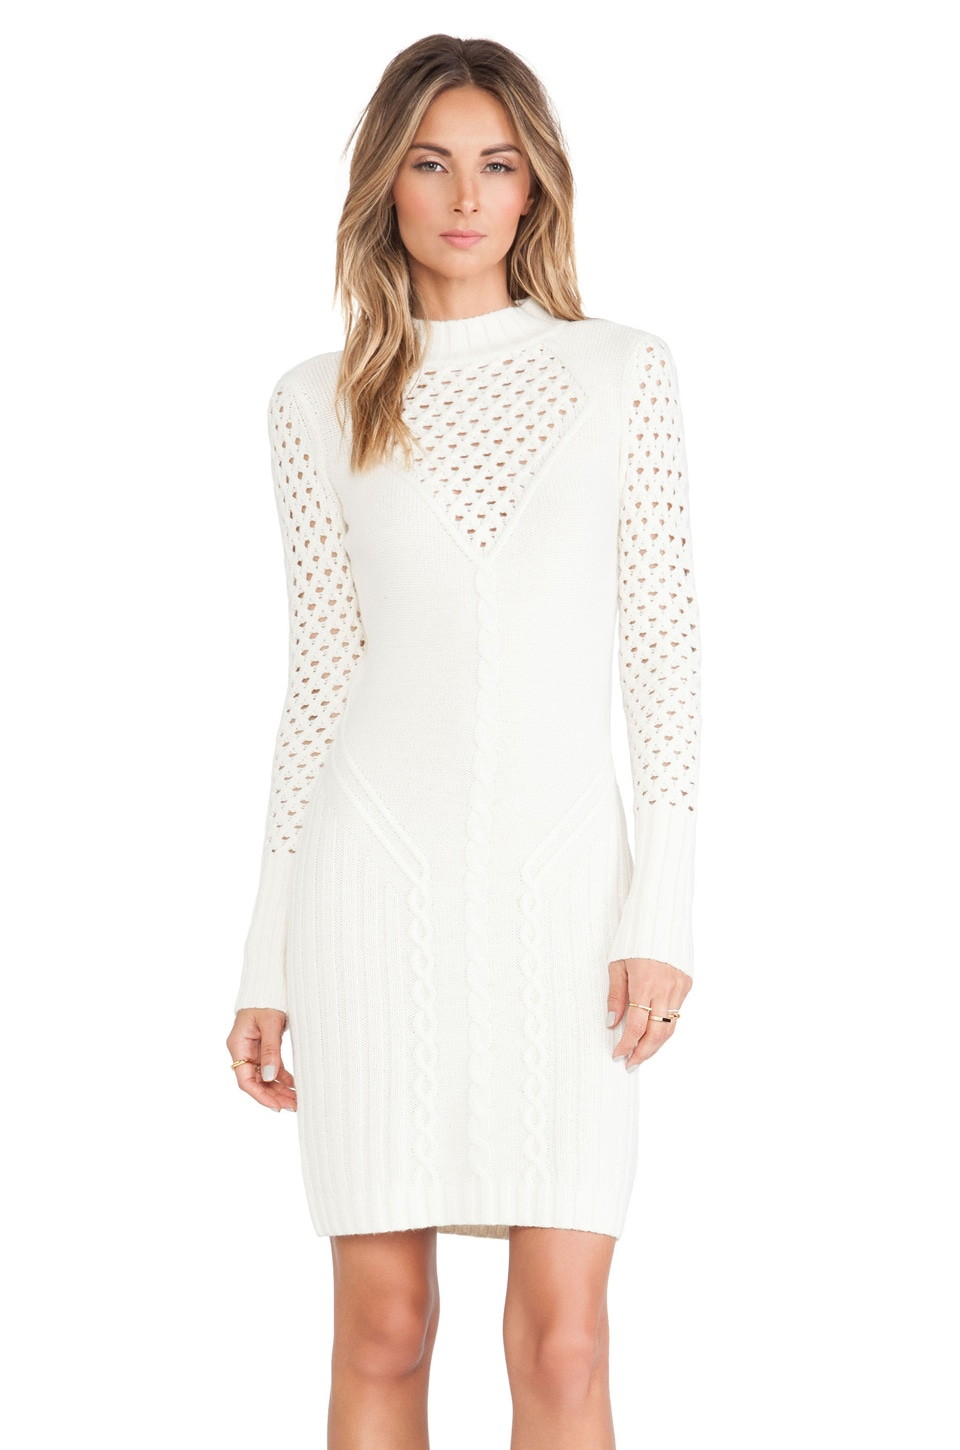 Alice by Temperley Lori Fitted Dress in Vanilla